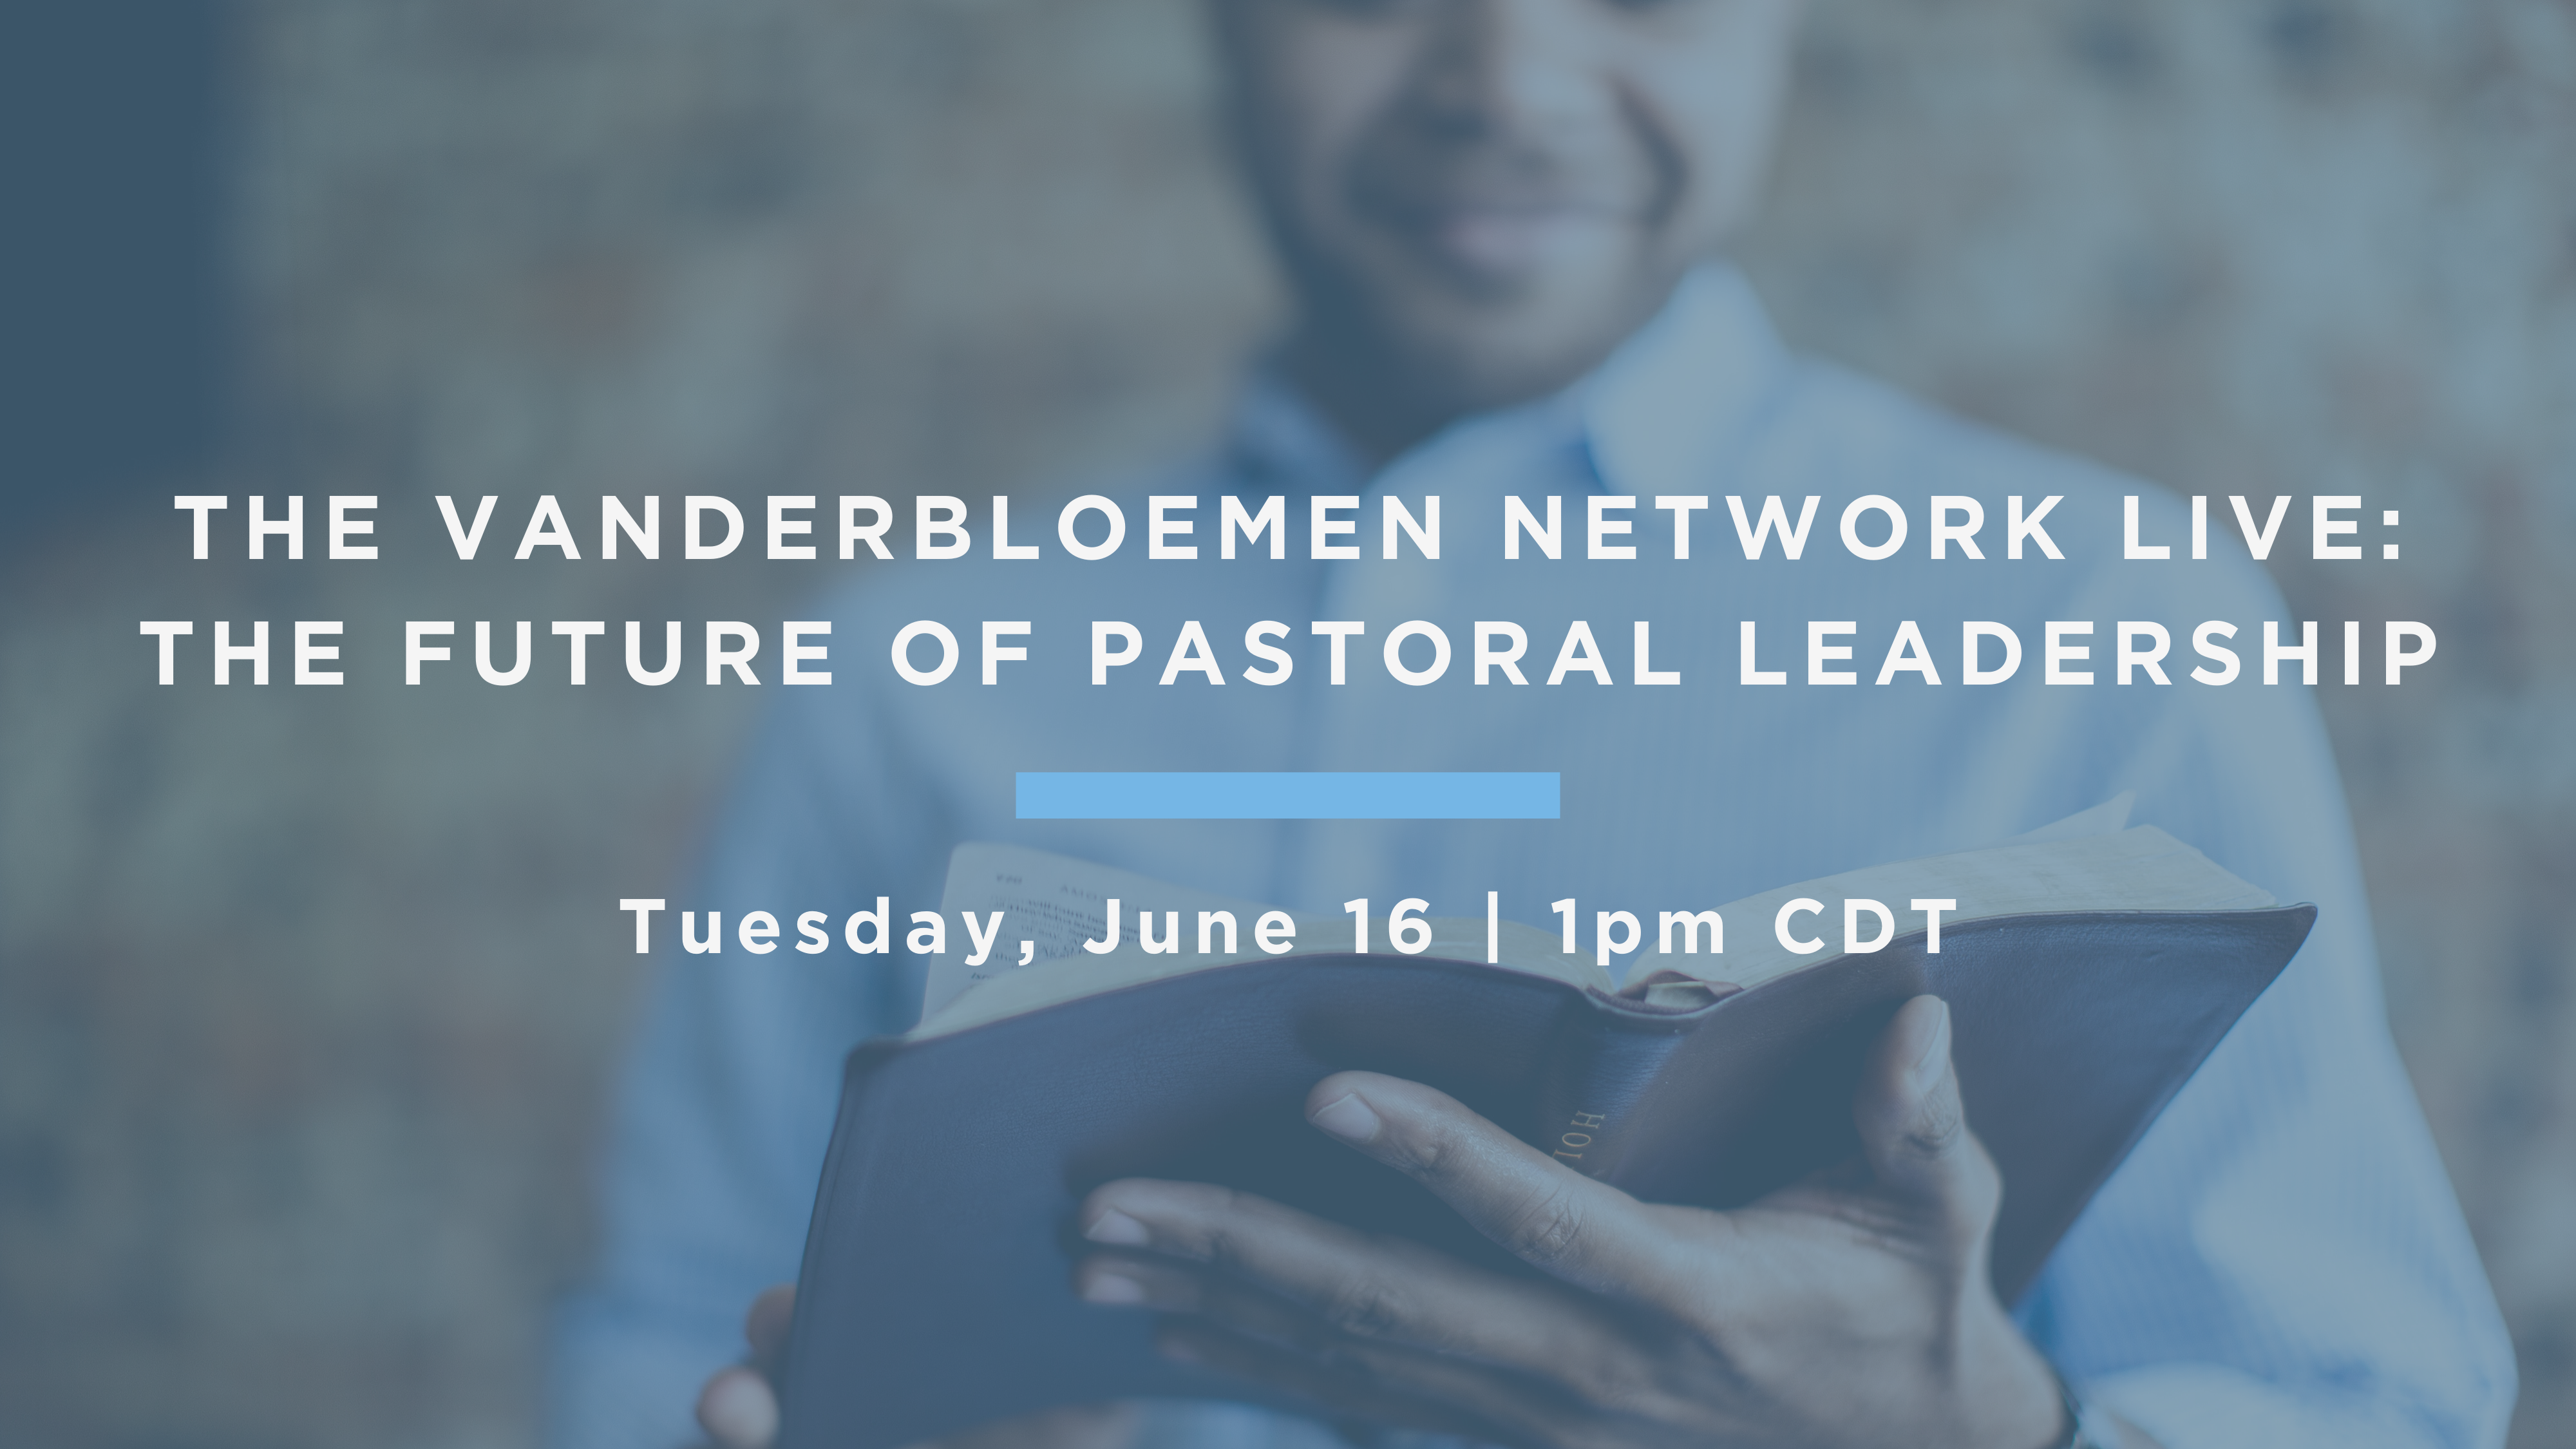 The Future of Pastoral Leadership